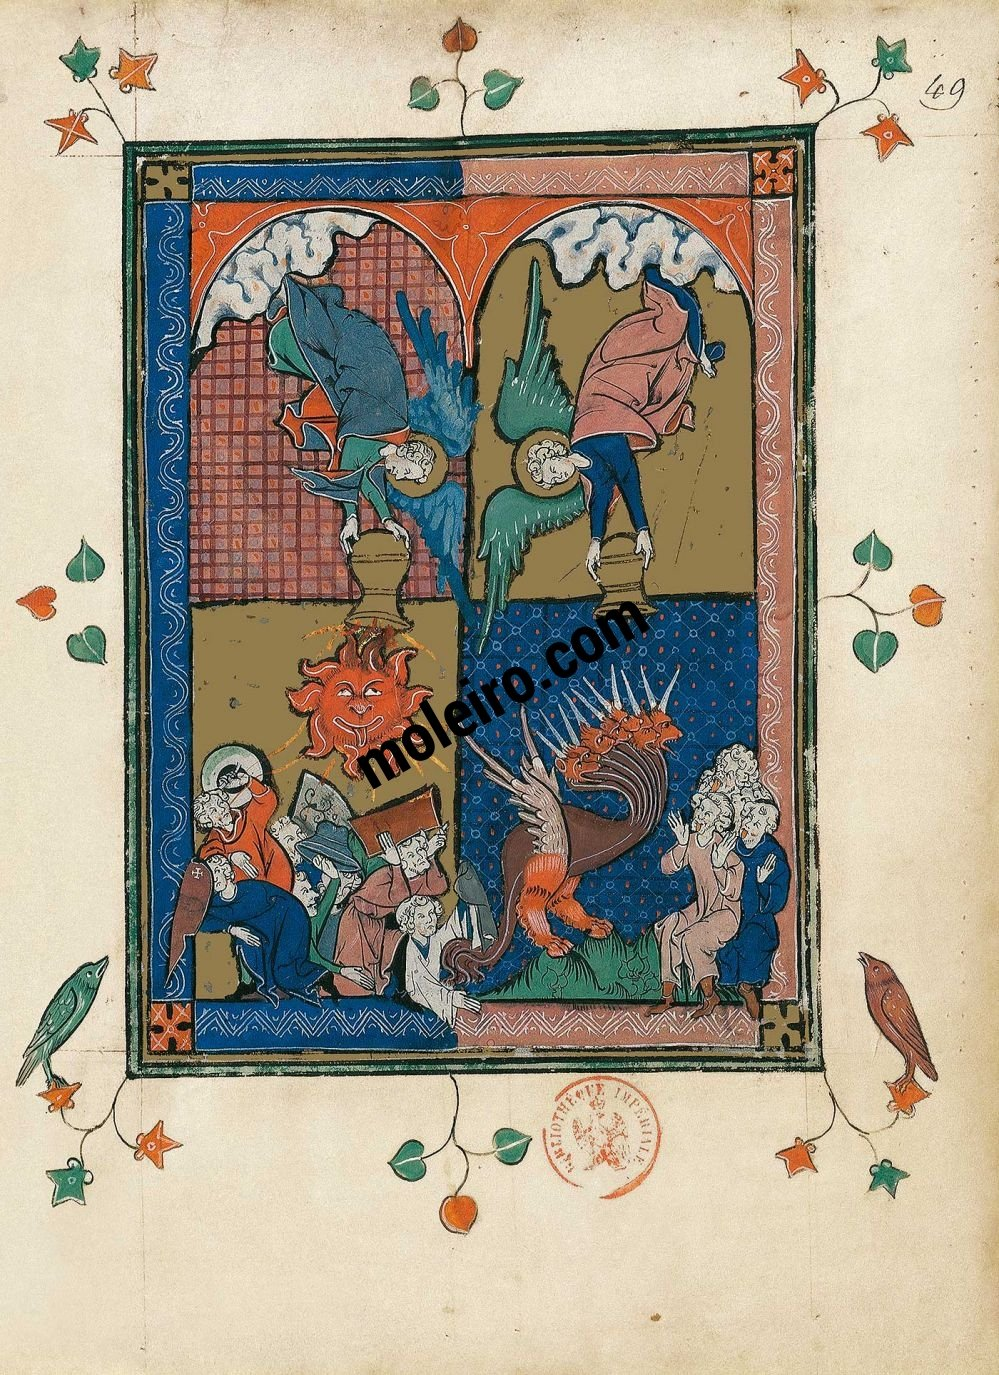 Apocalipse 1313 f. 49r, The fourth and fifth bowls (Revelation 16: 7-11)